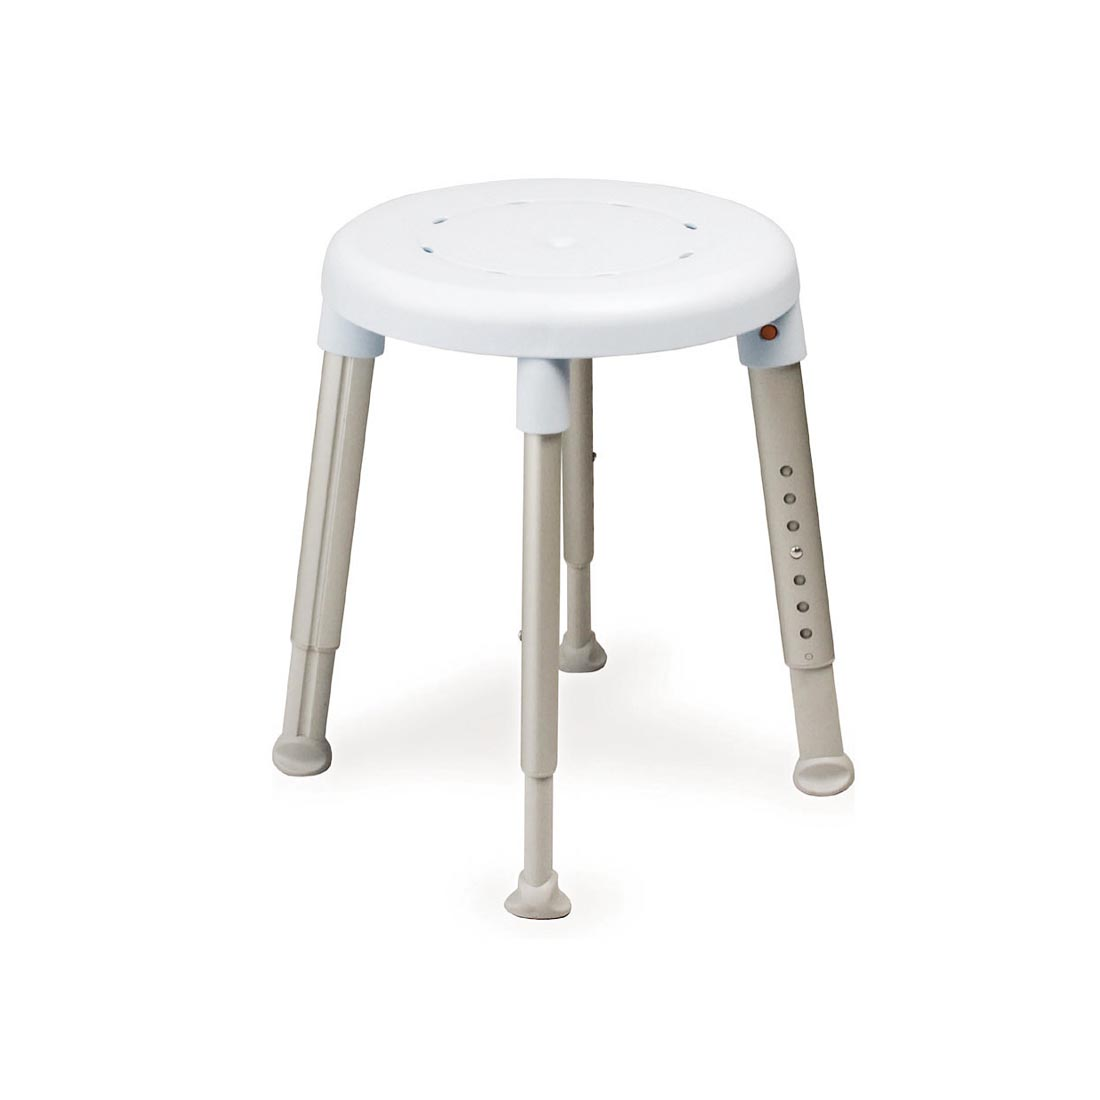 Easy Shower Stool By Etac